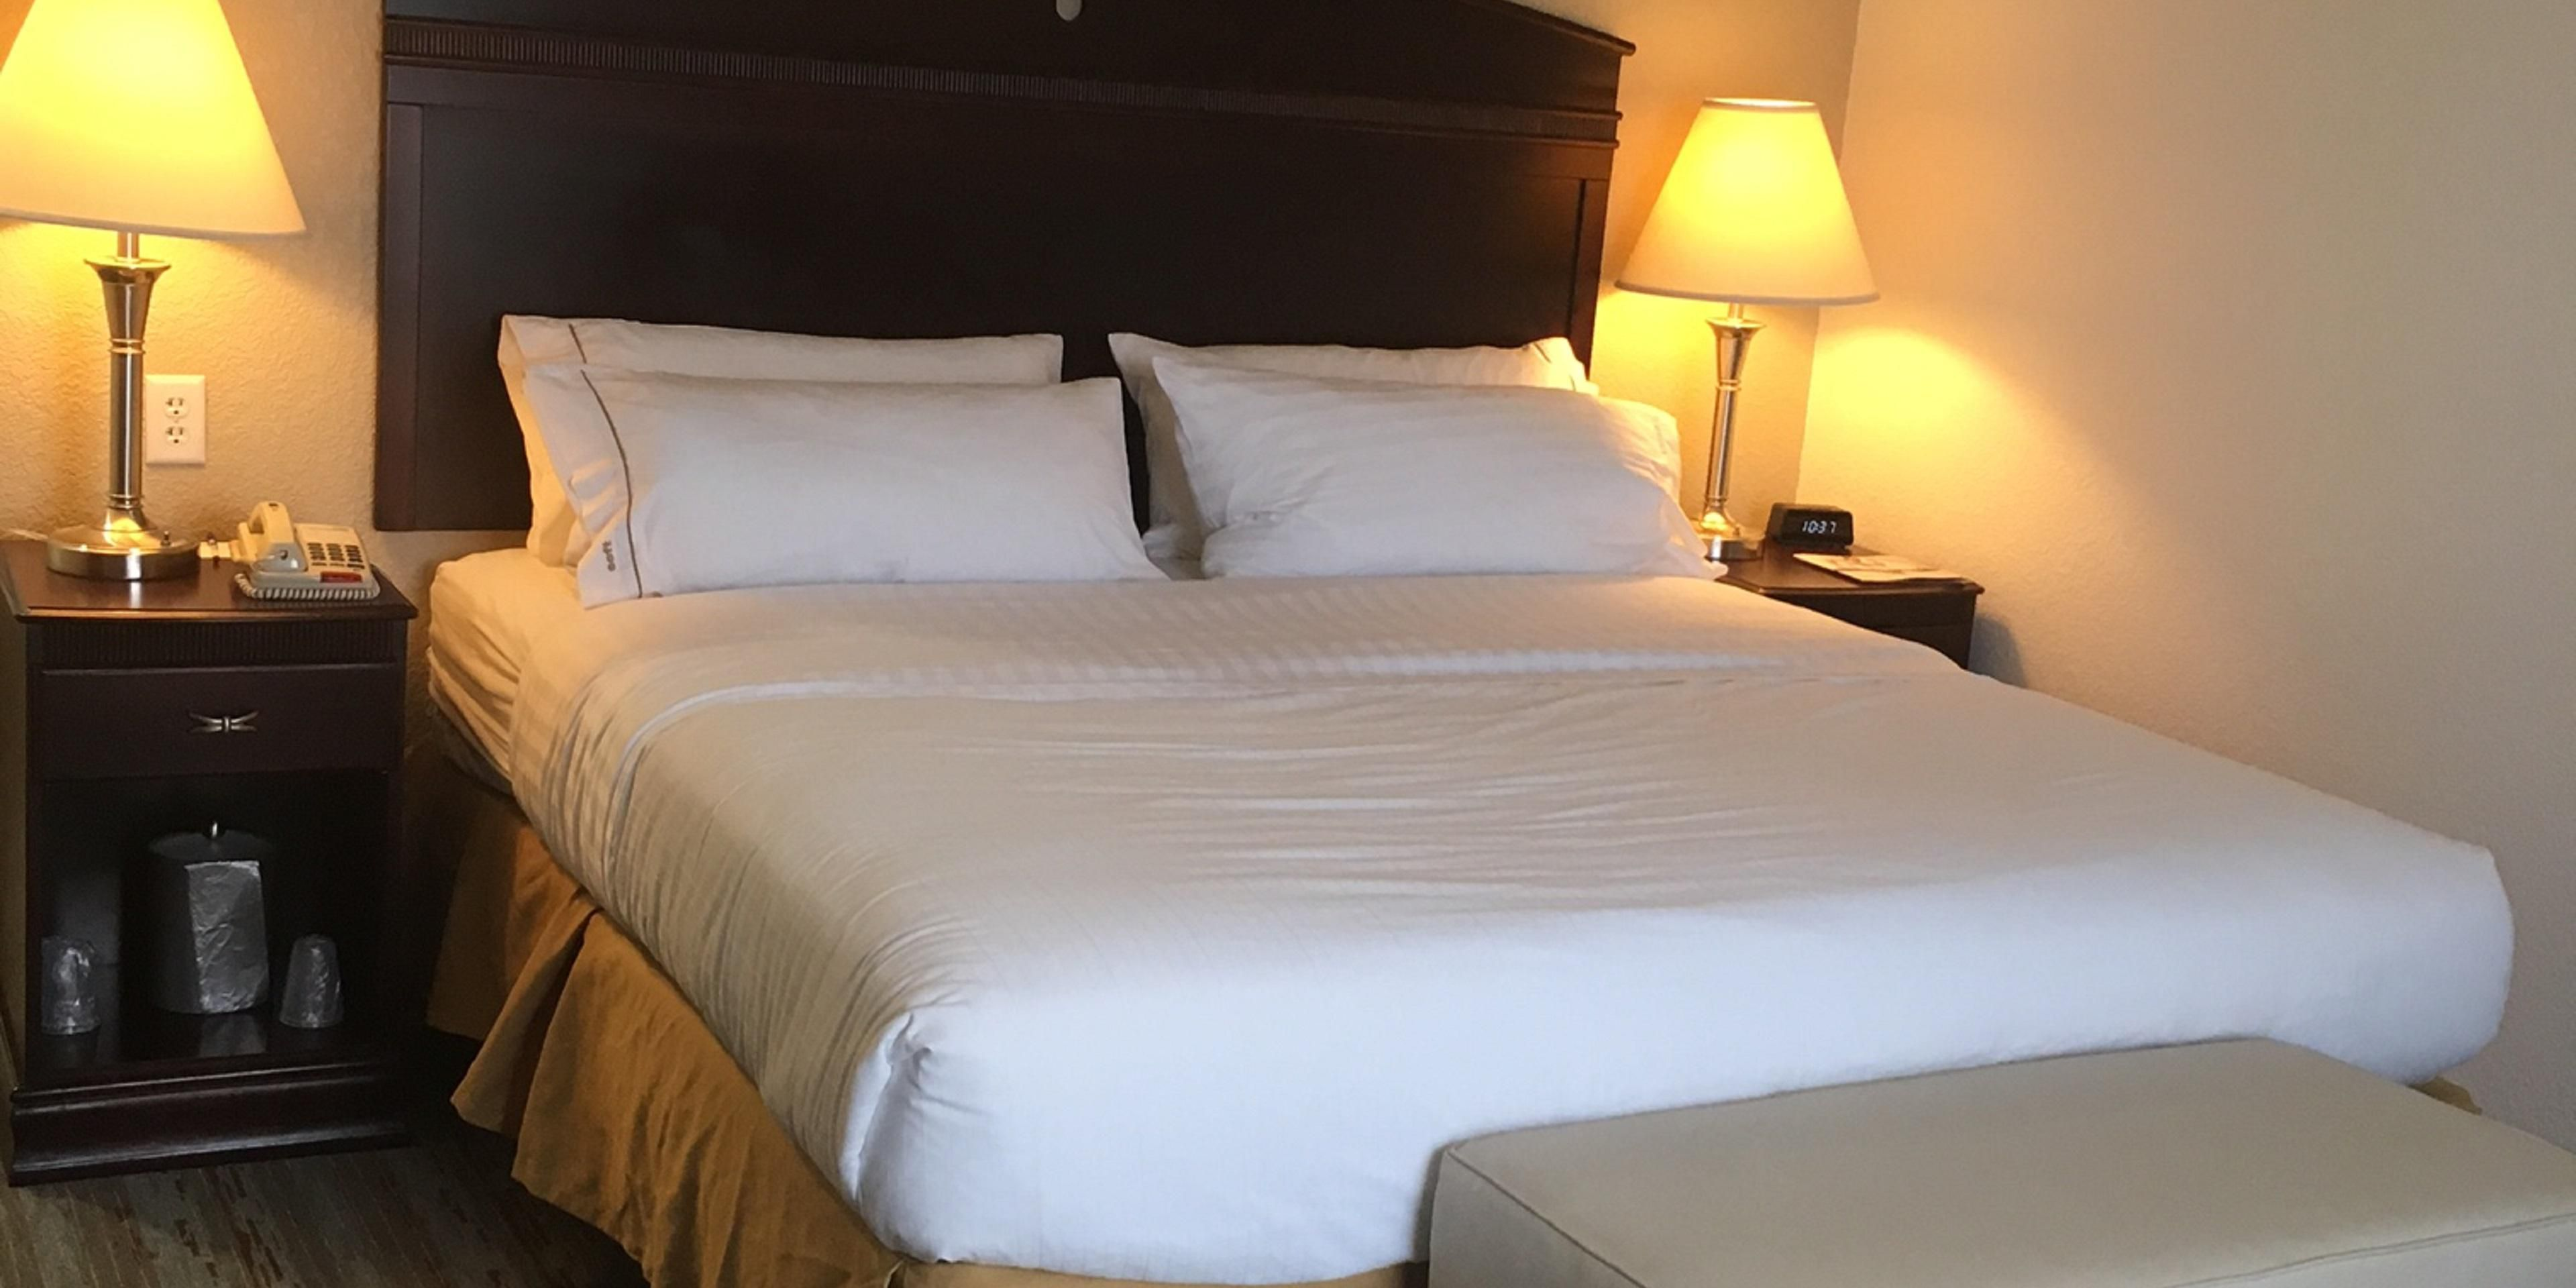 Americas Best Value Inn Suites Roaring River Holiday Inn Express West Jefferson Hotel By Ihg